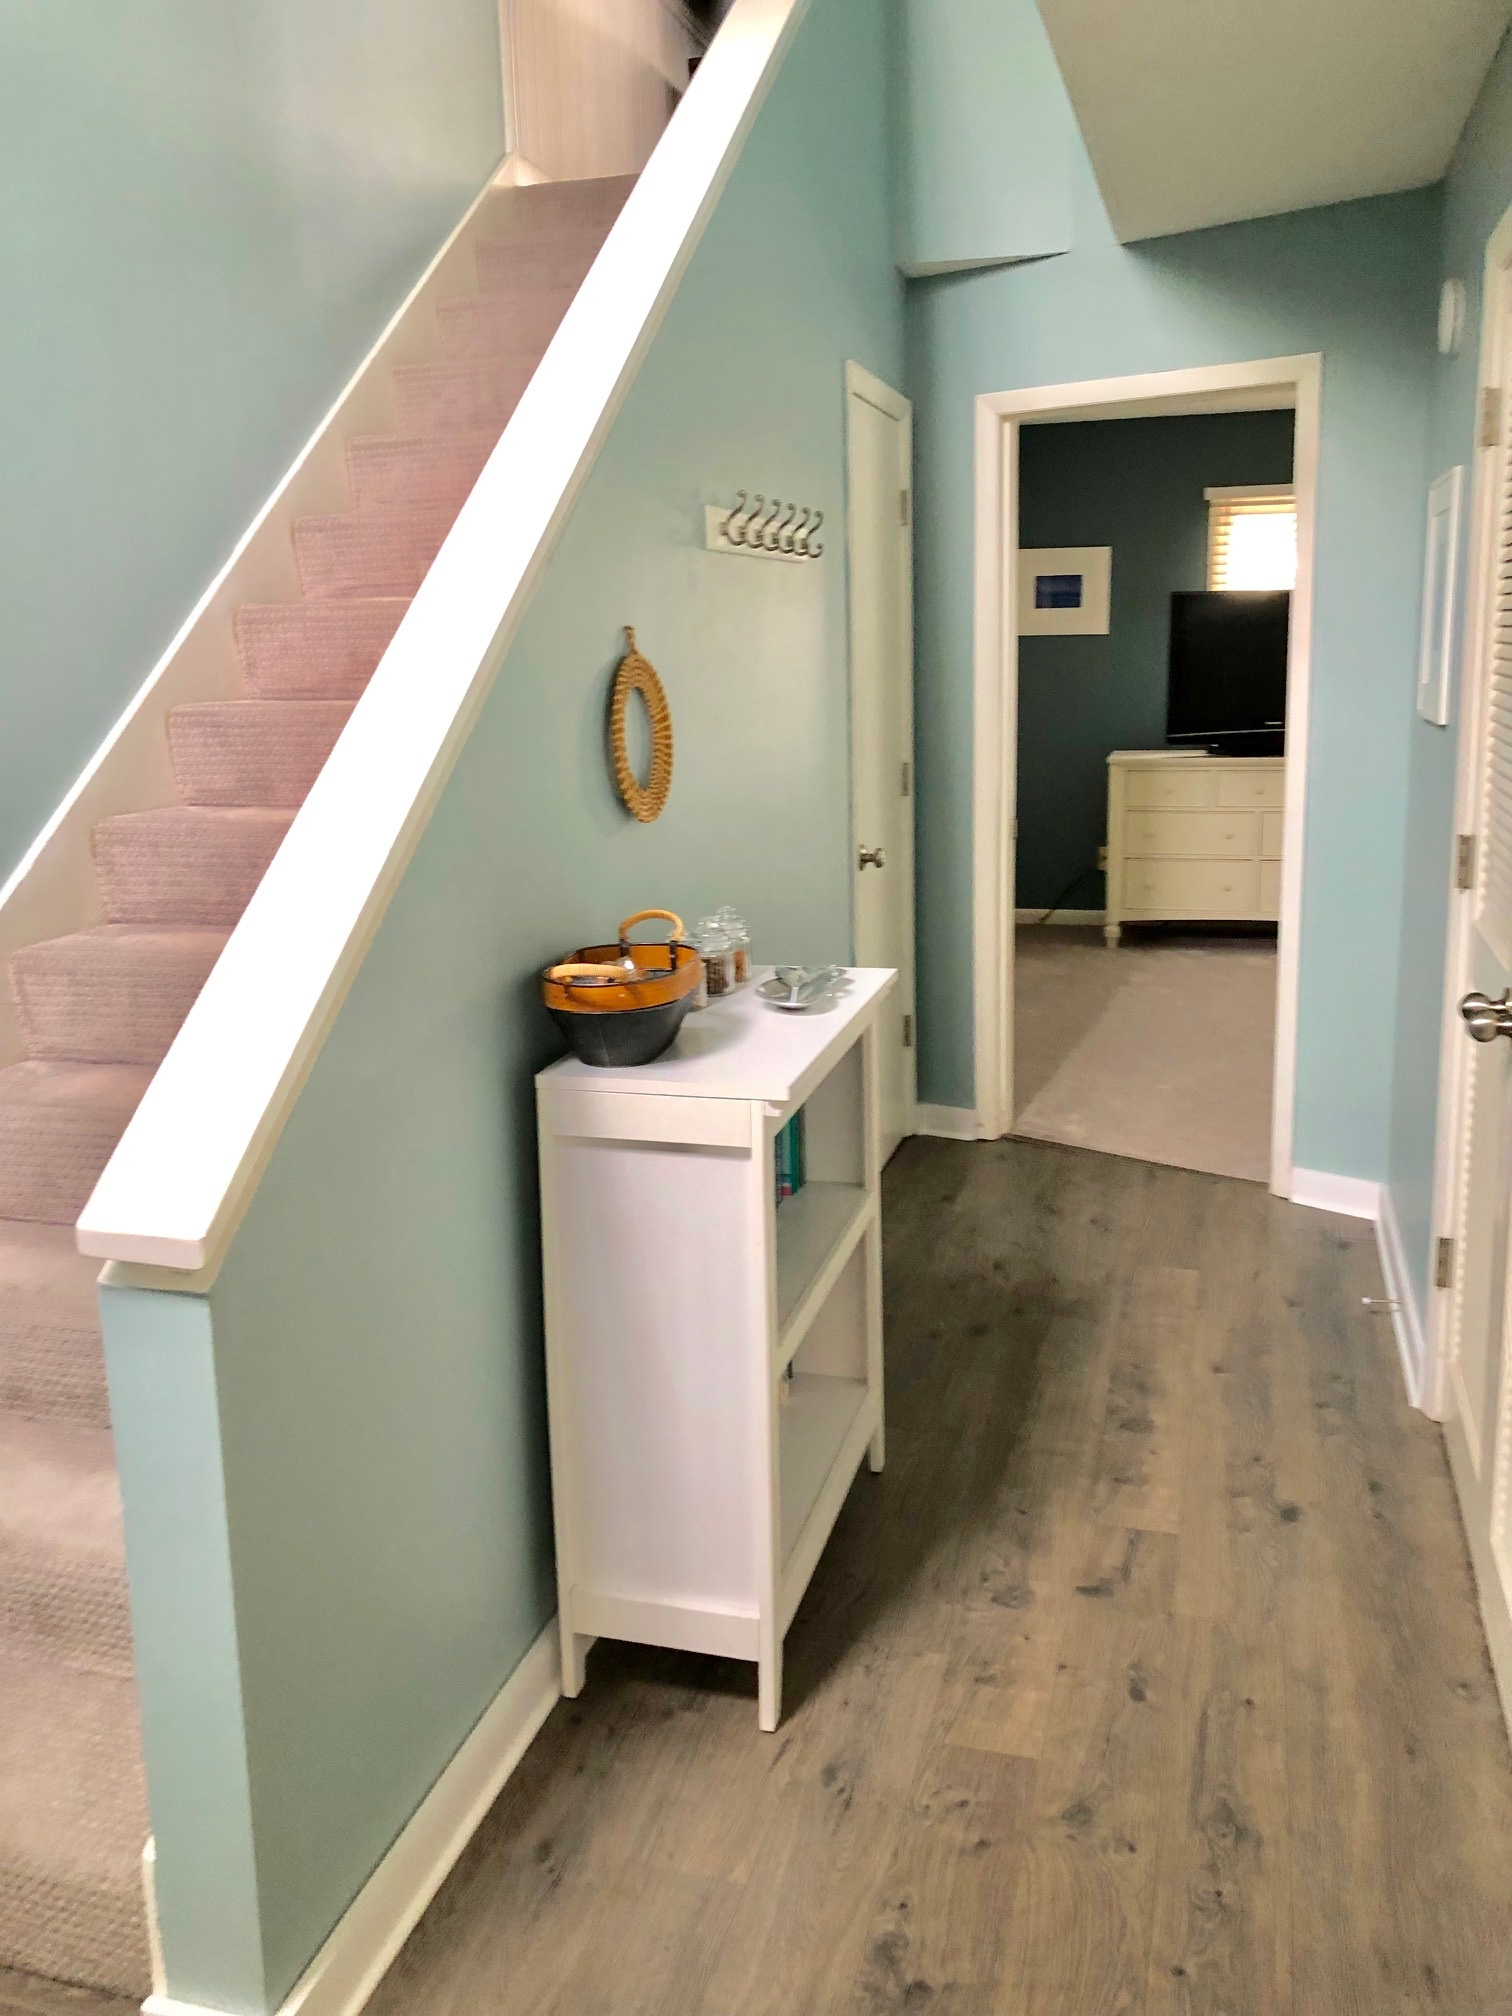 Entrance into reverse floor plan with bedrooms on lower level